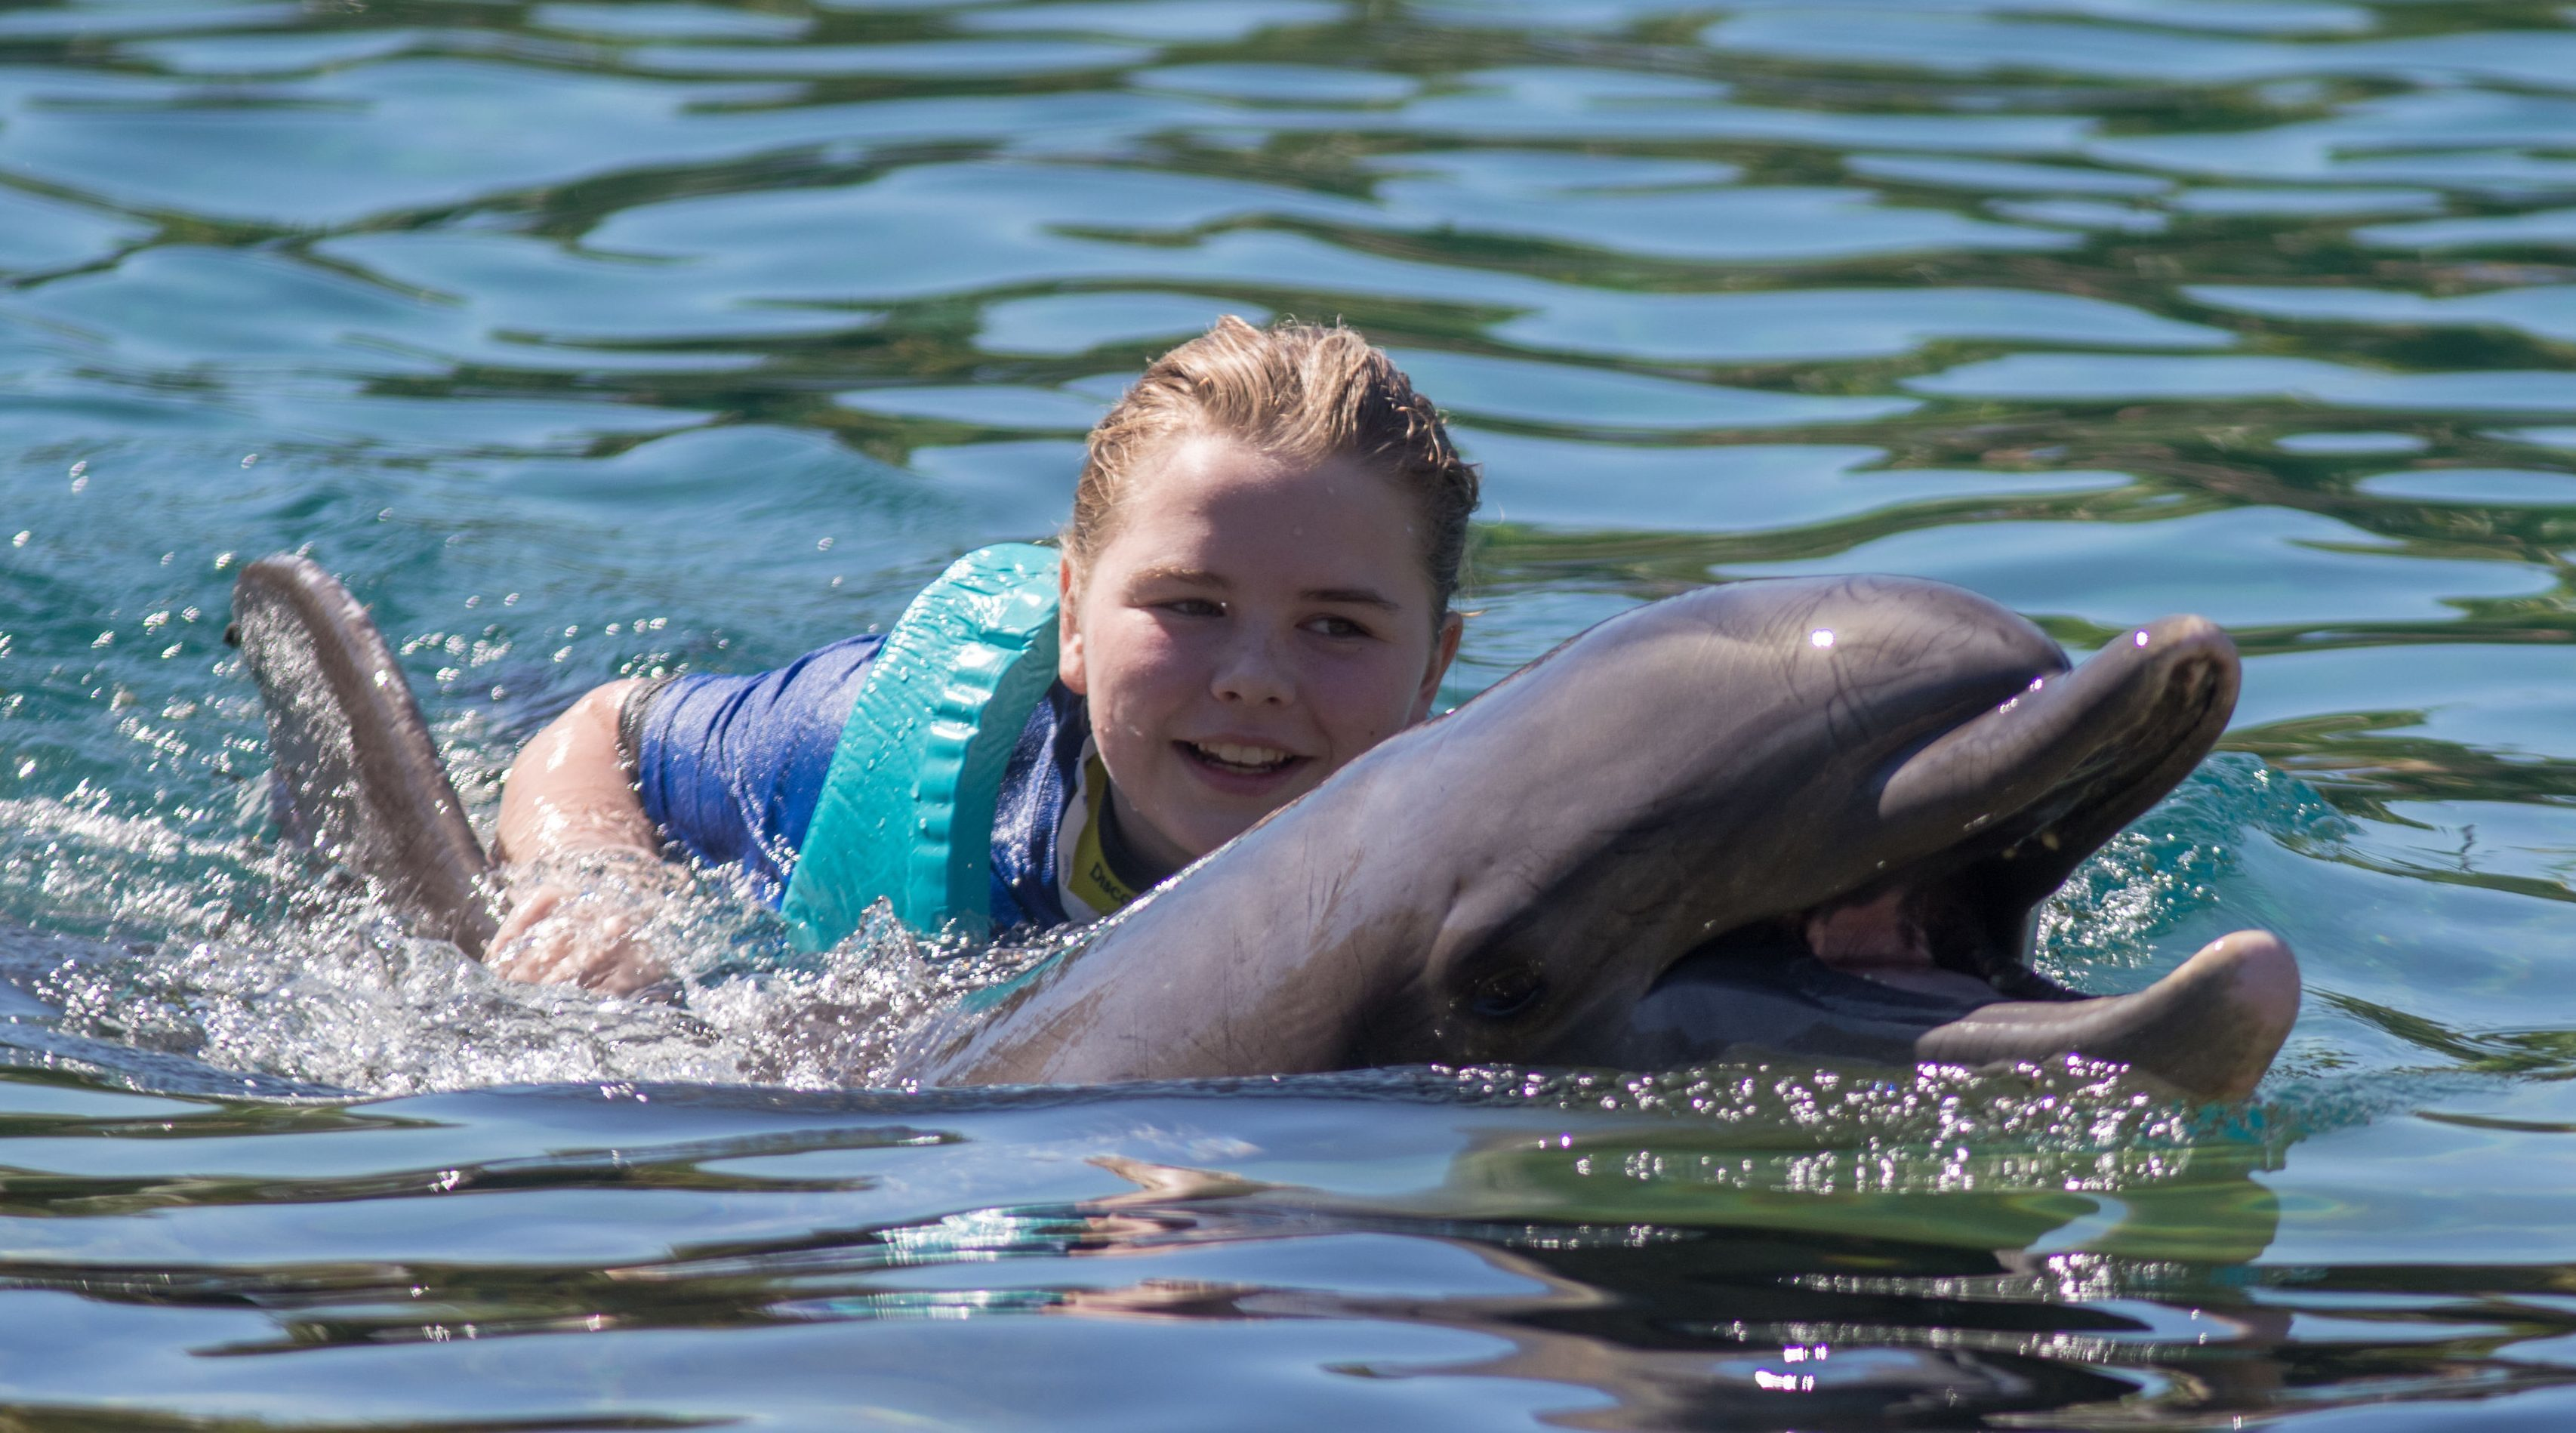 Morgan Maxwell, from Bridge of Earn, on her Dreamflight trip of a lifetime